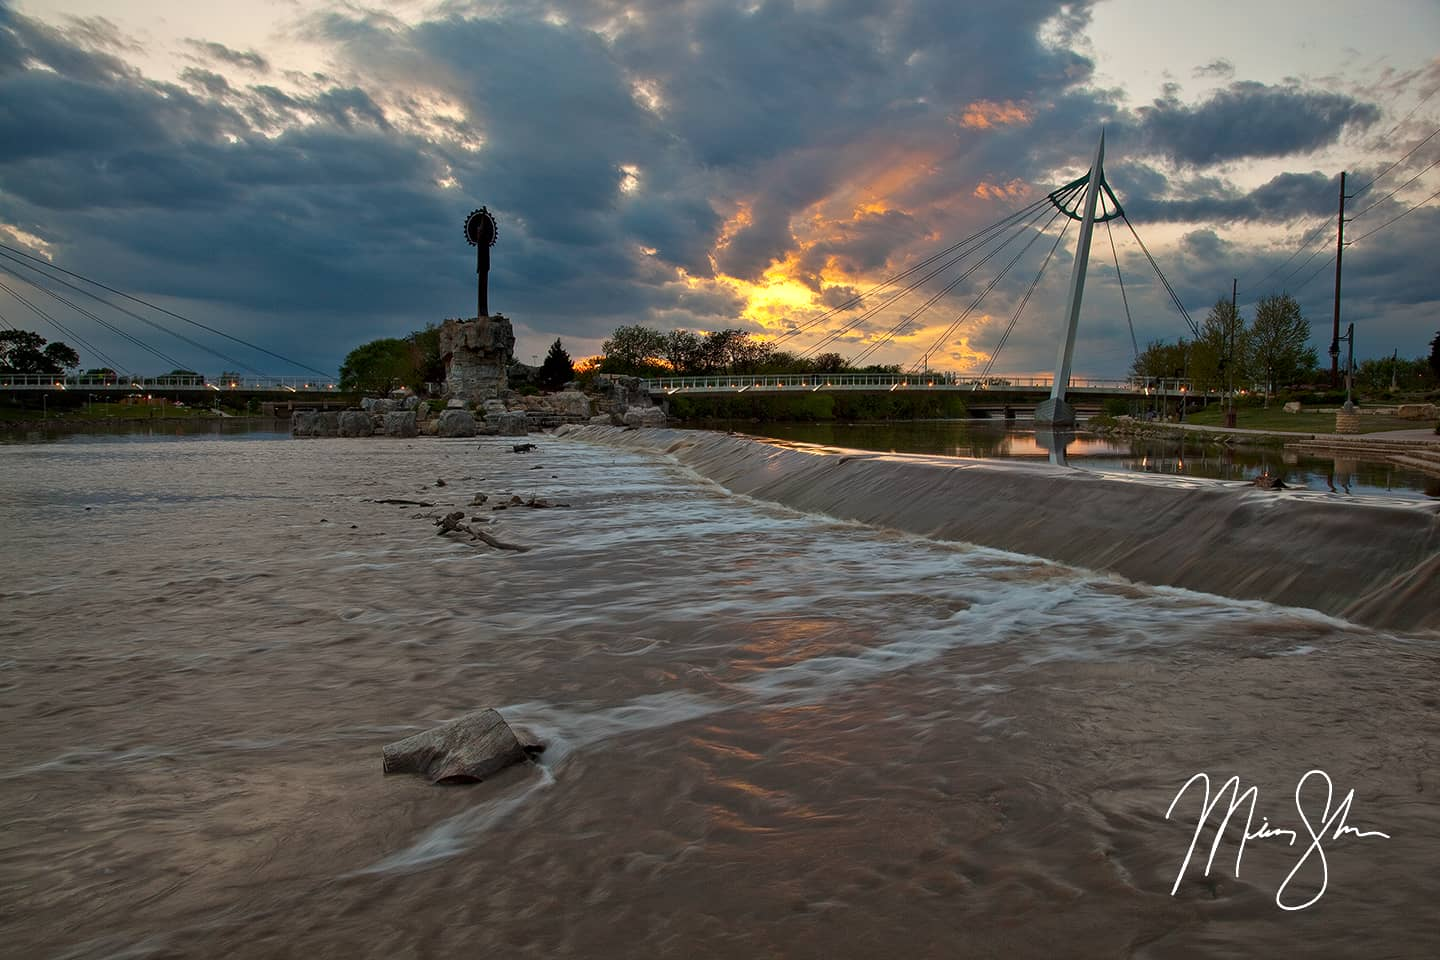 Open edition fine art print of Arkansas River Sunset from Mickey Shannon Photography. Location: Keeper of the Plains, Arkansas River, Wichita, Kansas